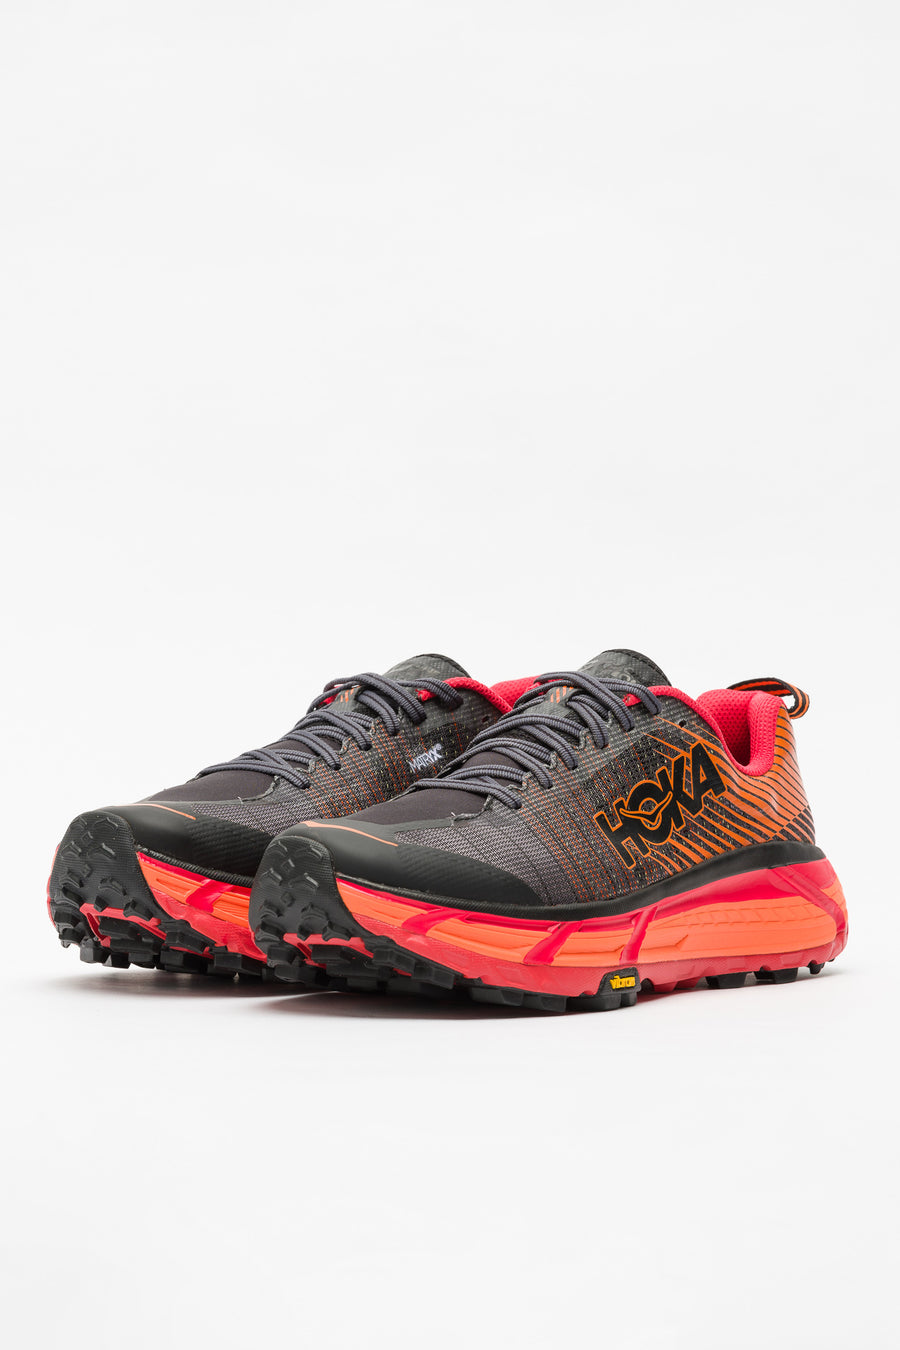 sale retailer b78d0 7a7ec M Evo Mafate 2 in Black/Poppy Red